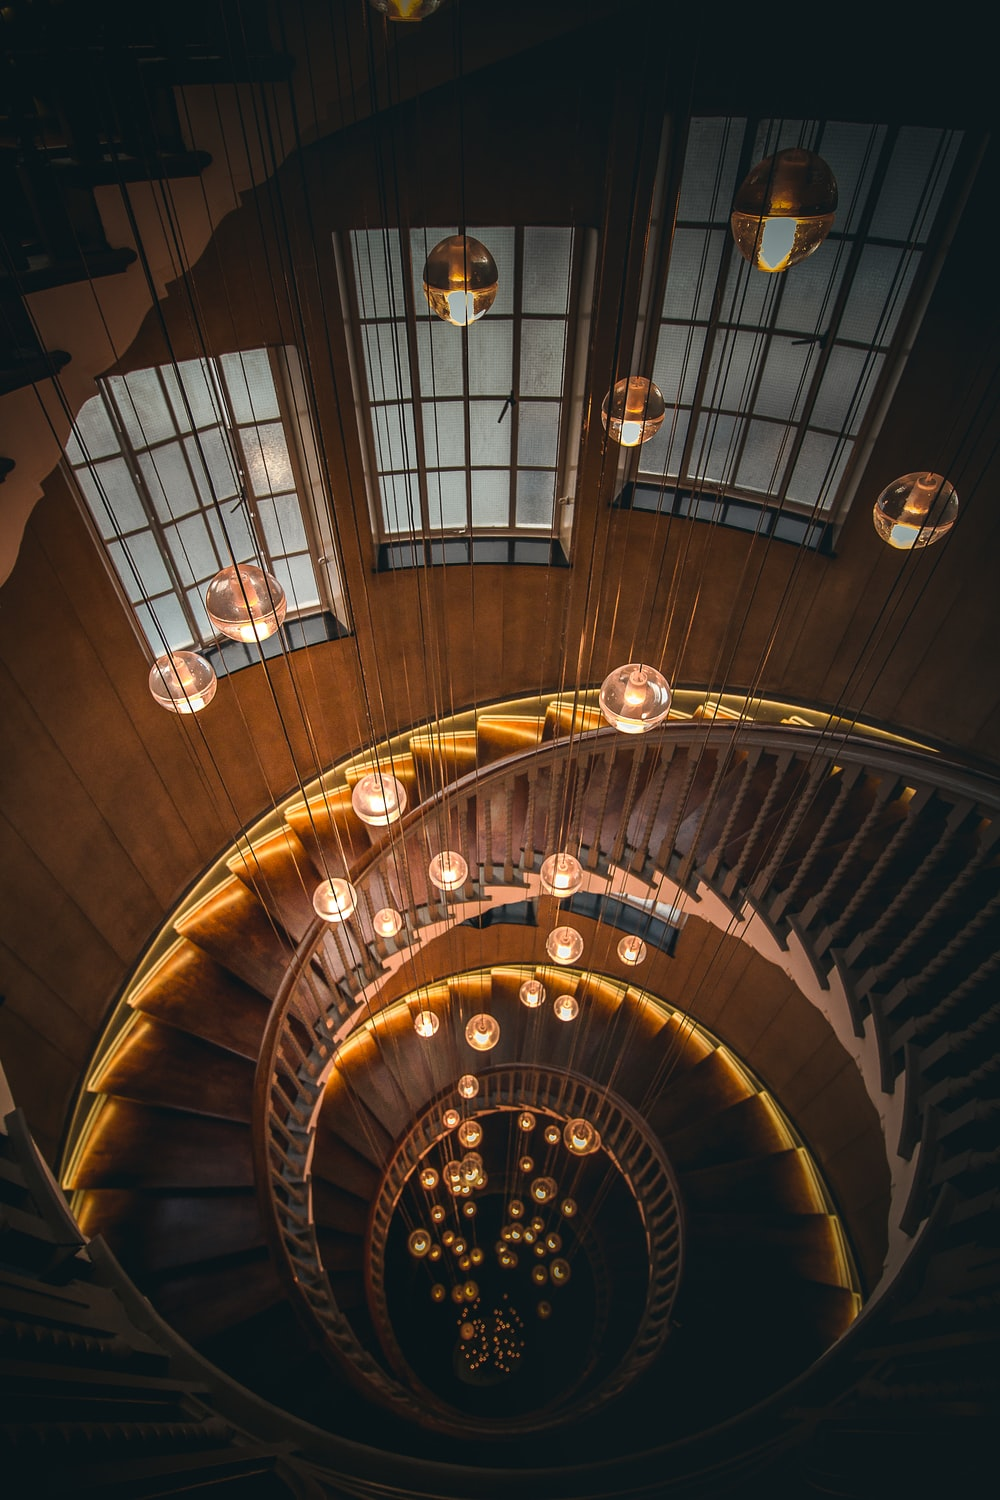 twirl stairs with chandeliers